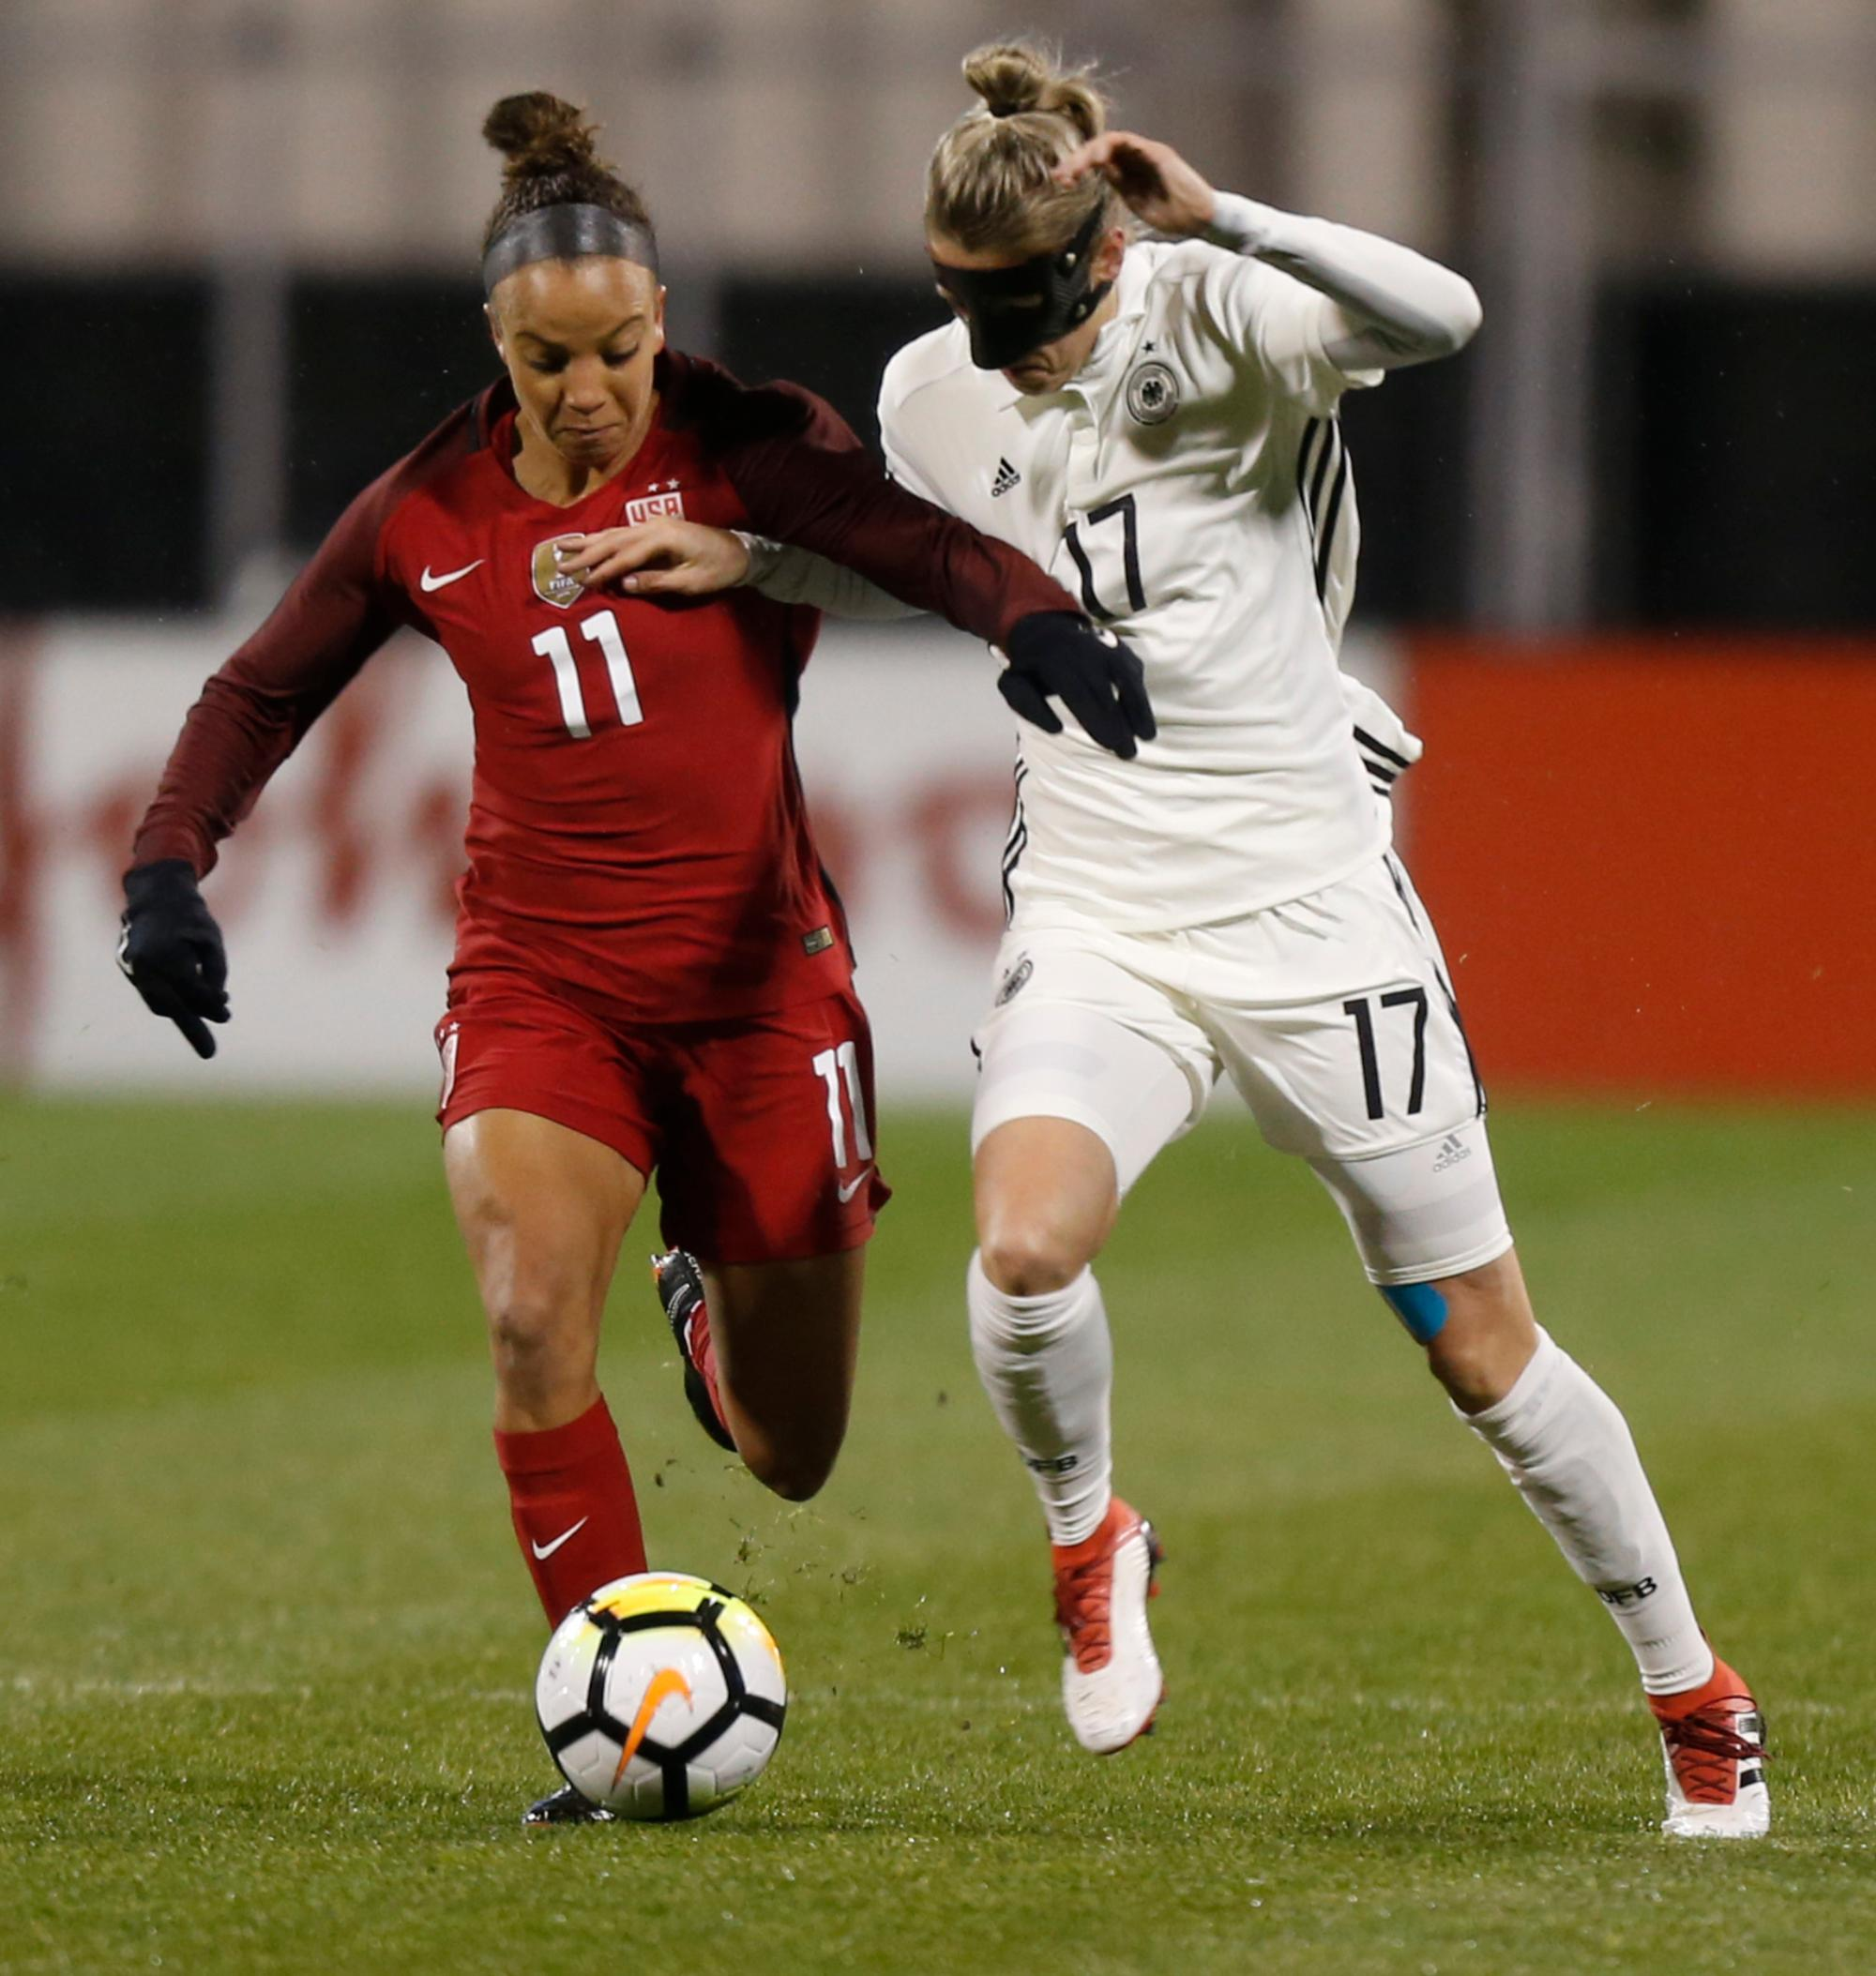 United States' Mallory Pugh, left, and Germany's Verena Faisst race for the ball during the first half of a SheBelieves Cup women's soccer match Thursday, March 1, 2018, in Columbus, Ohio. (AP Photo/Jay LaPrete)